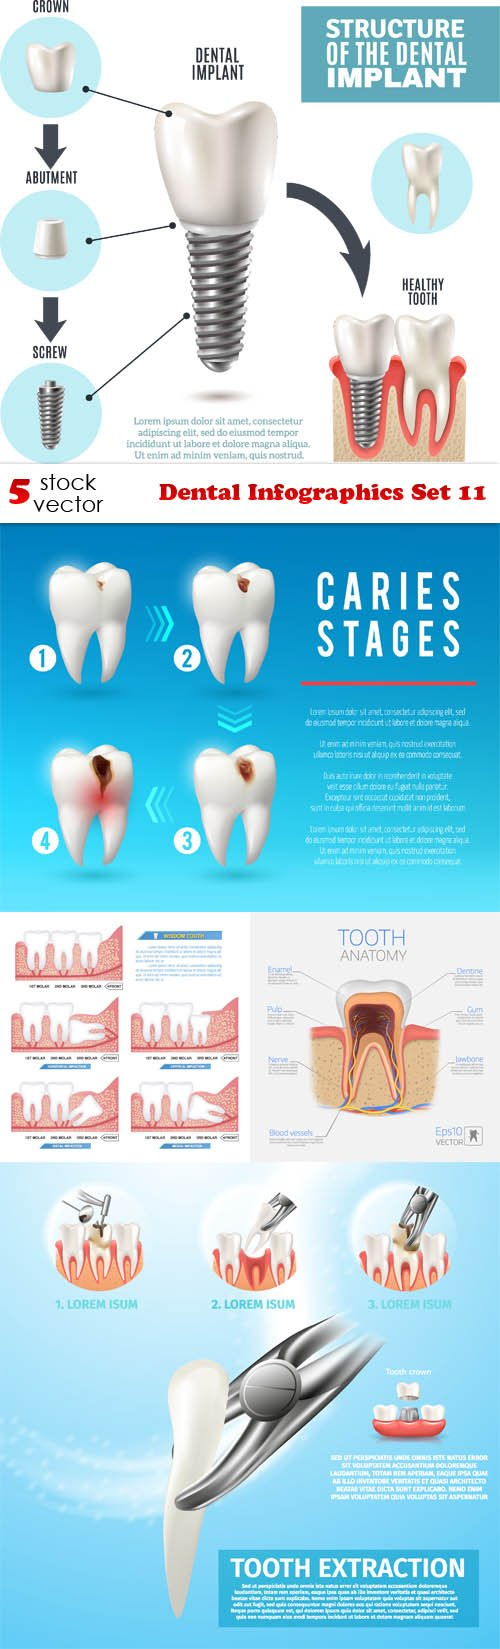 Vectors - Dental Infographics Set 11